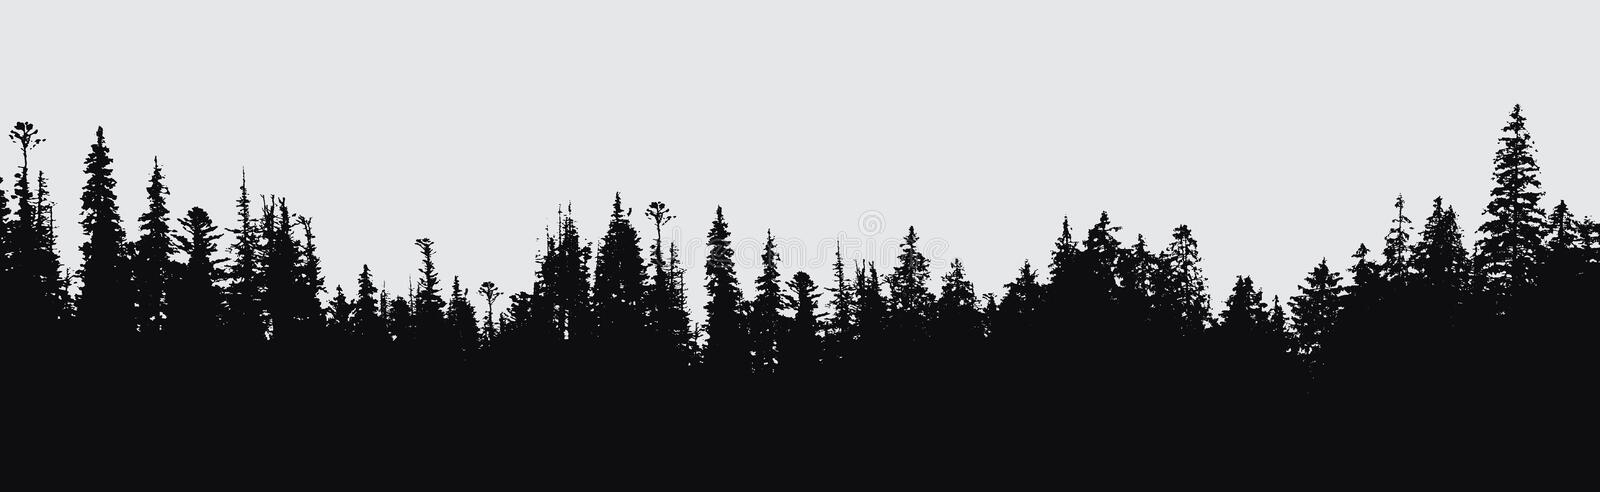 Forest silhouette background. vector illustration